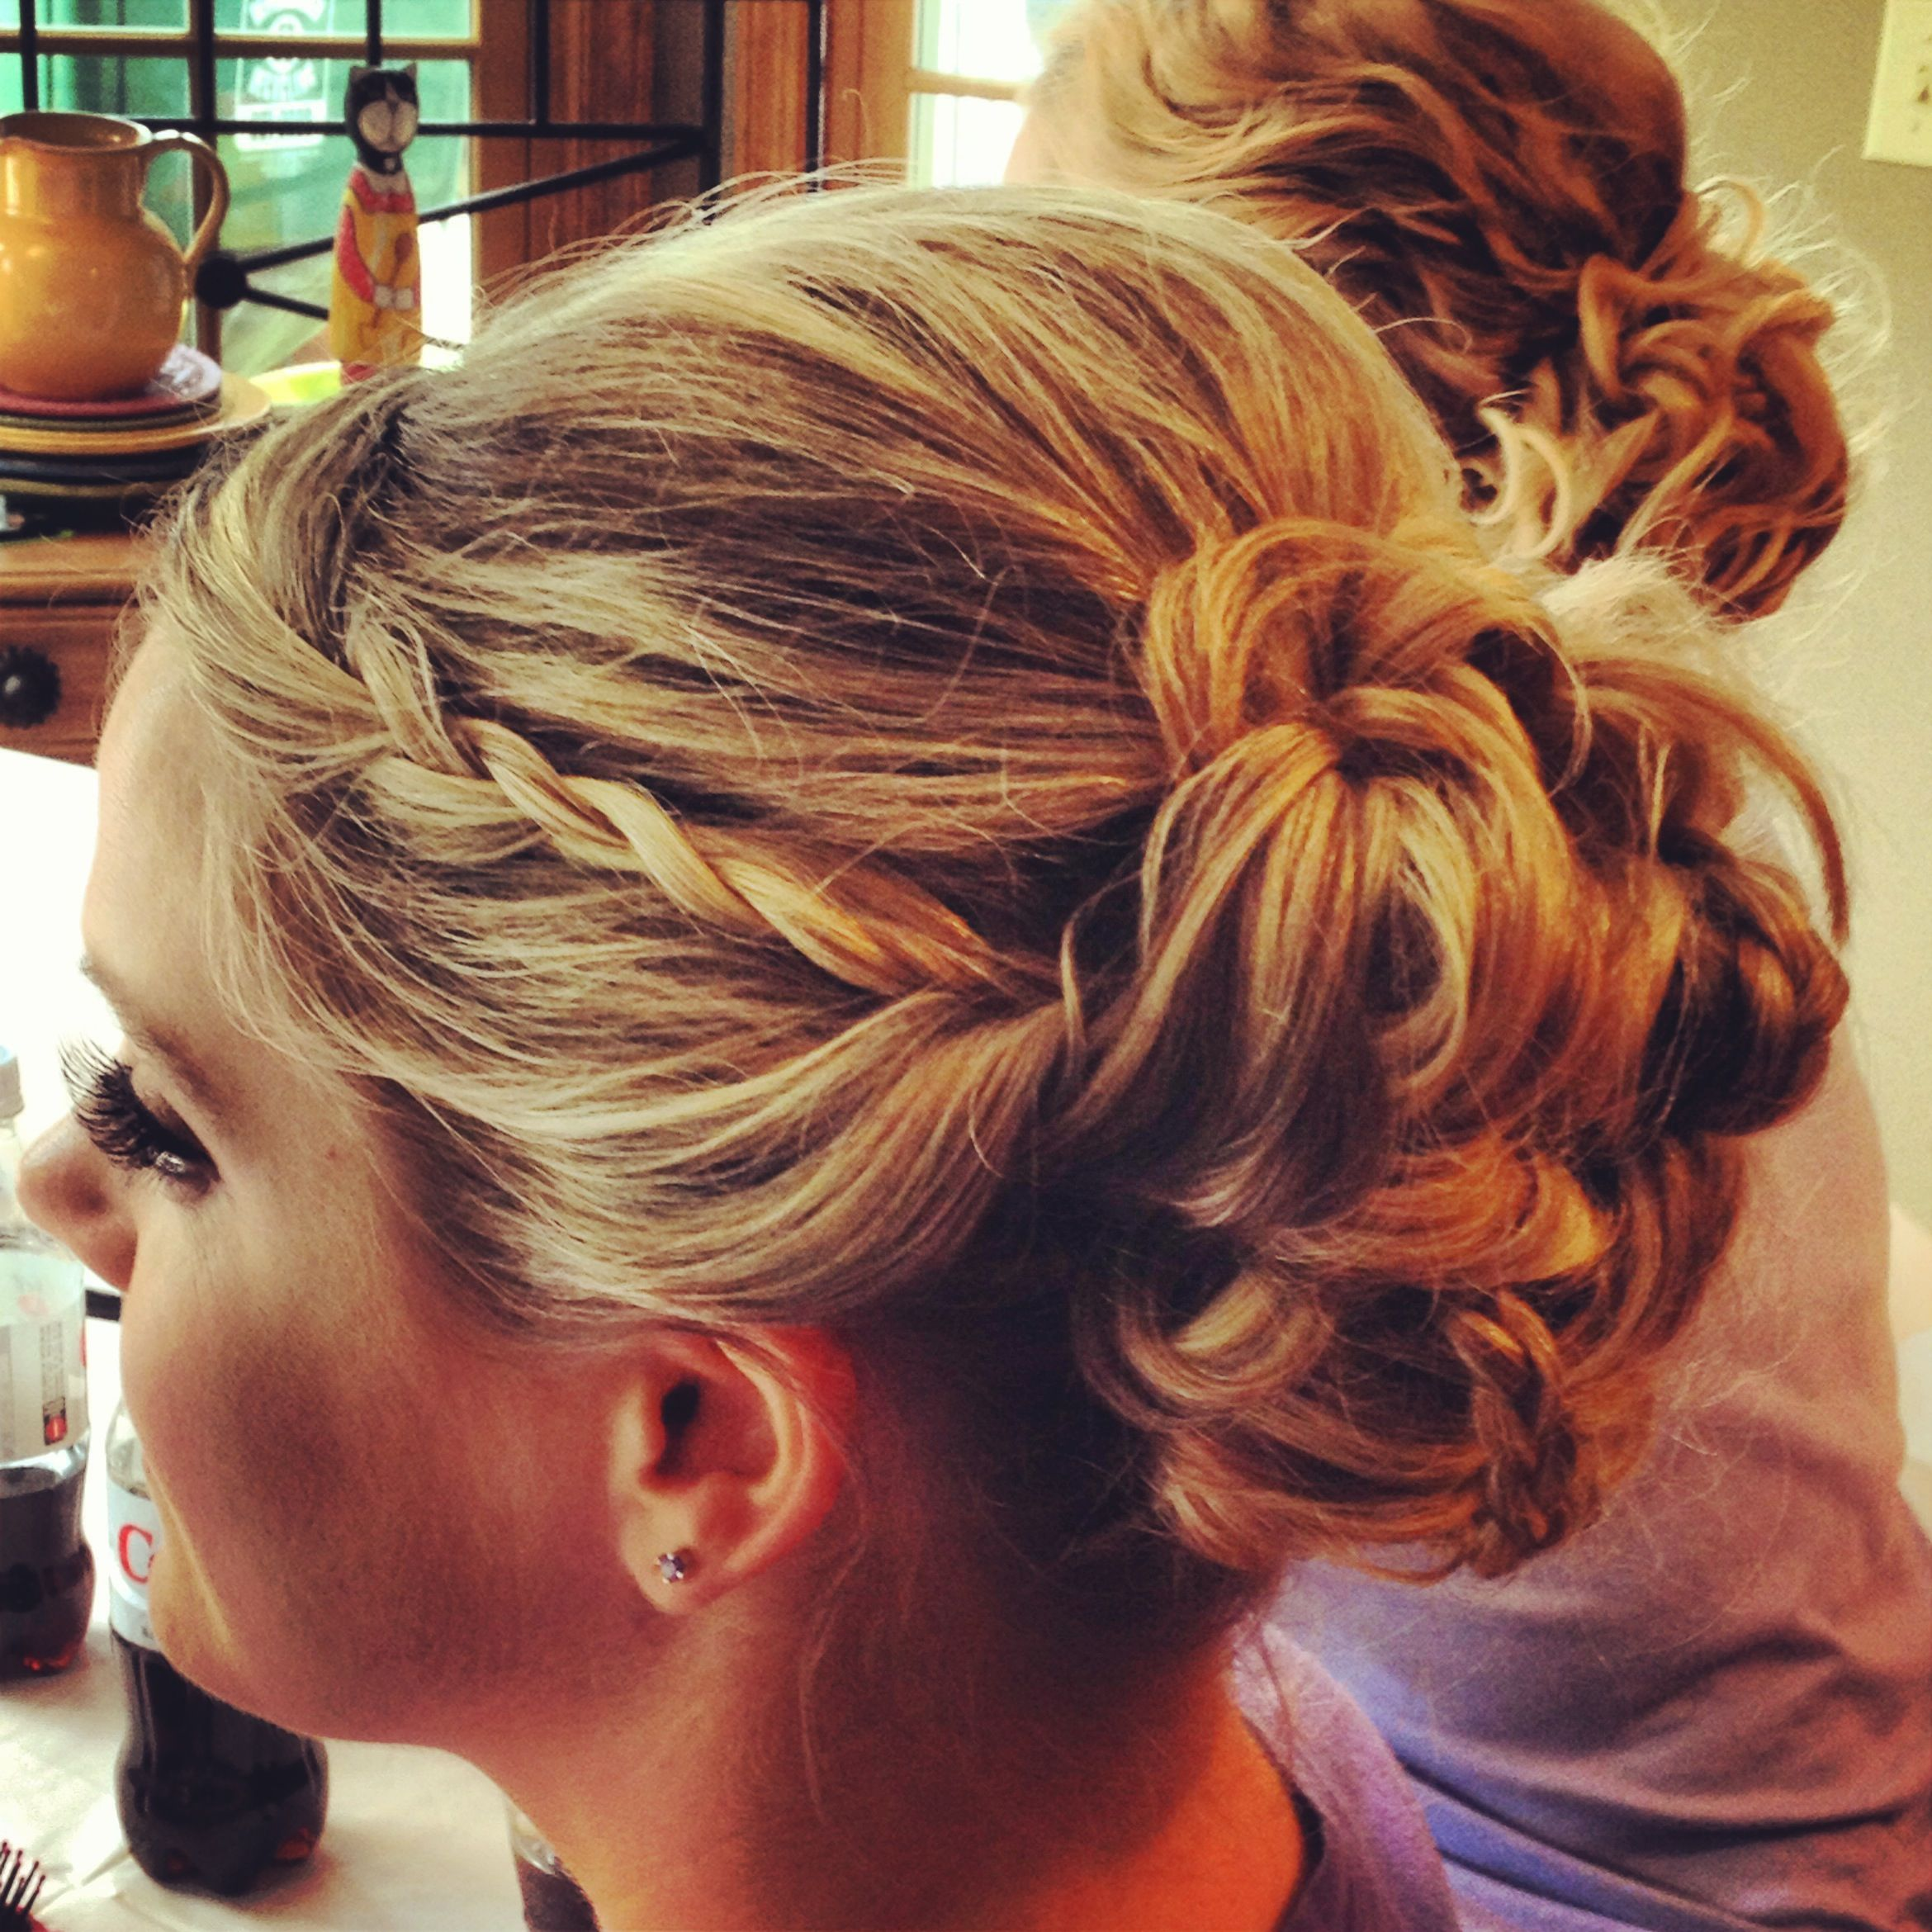 Bridesmaid hair by julie meacham alainna beljanski pyatt letus make